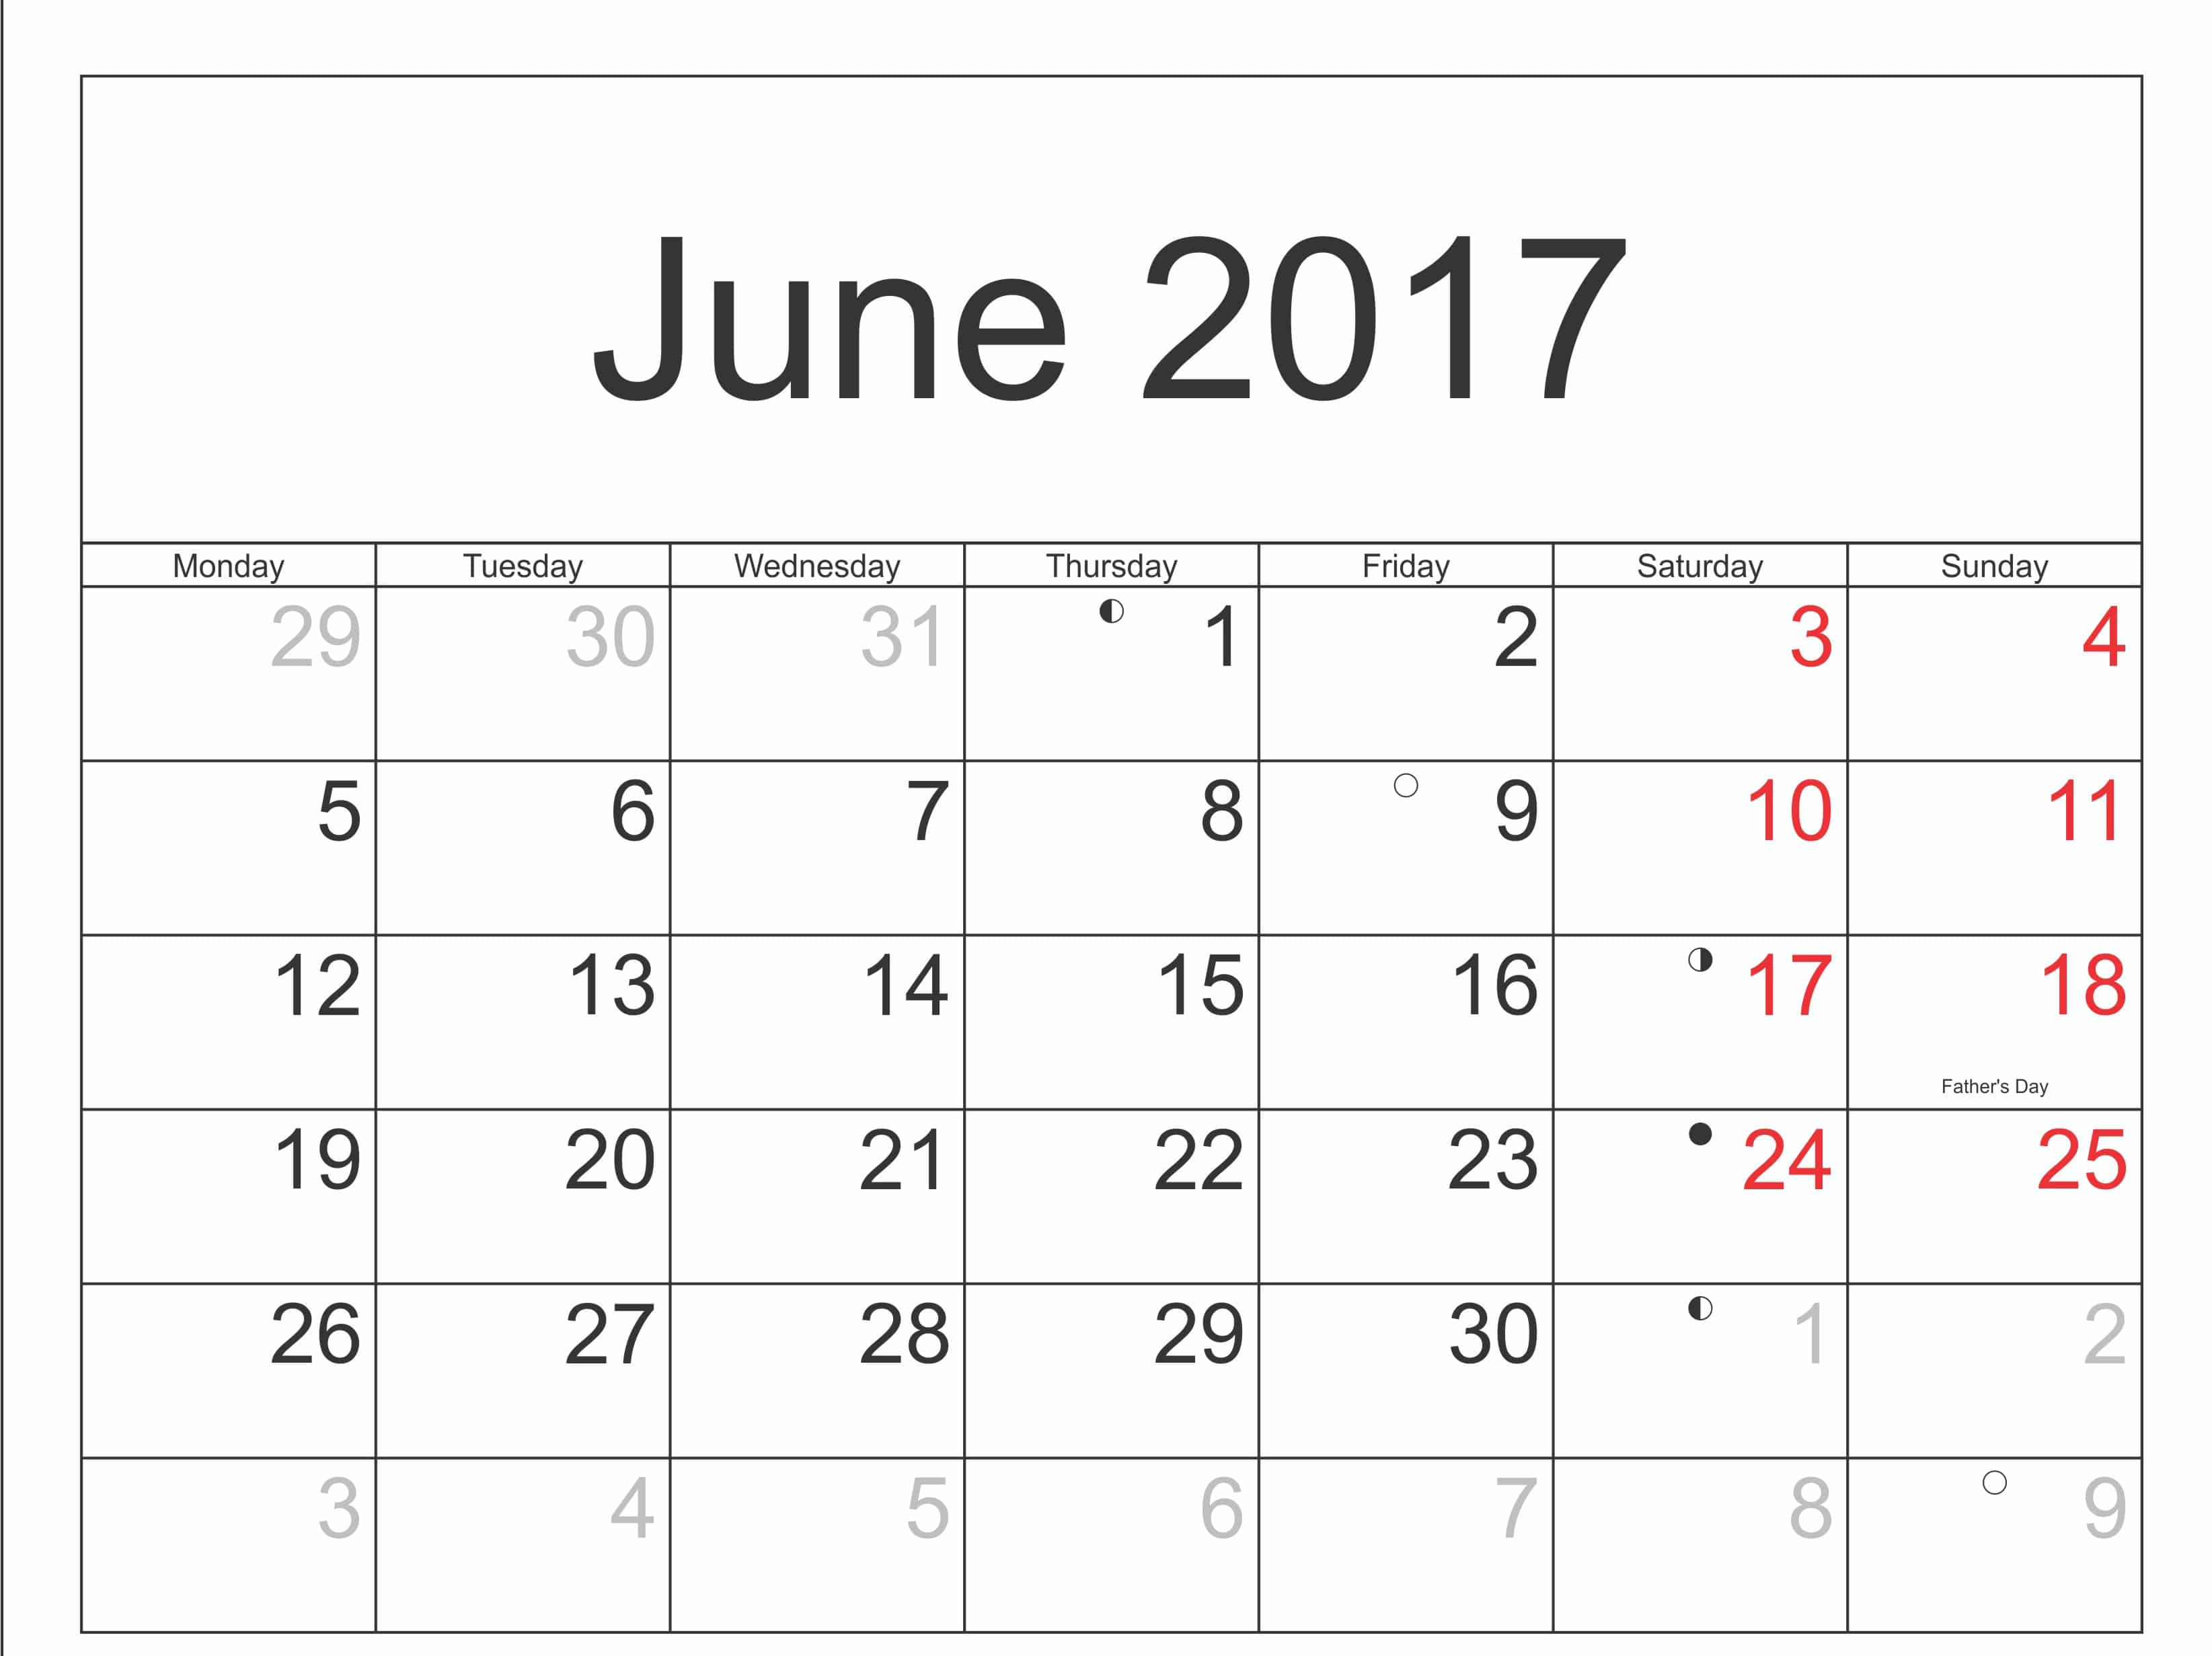 June 2017 Calendar with Indian Holiday